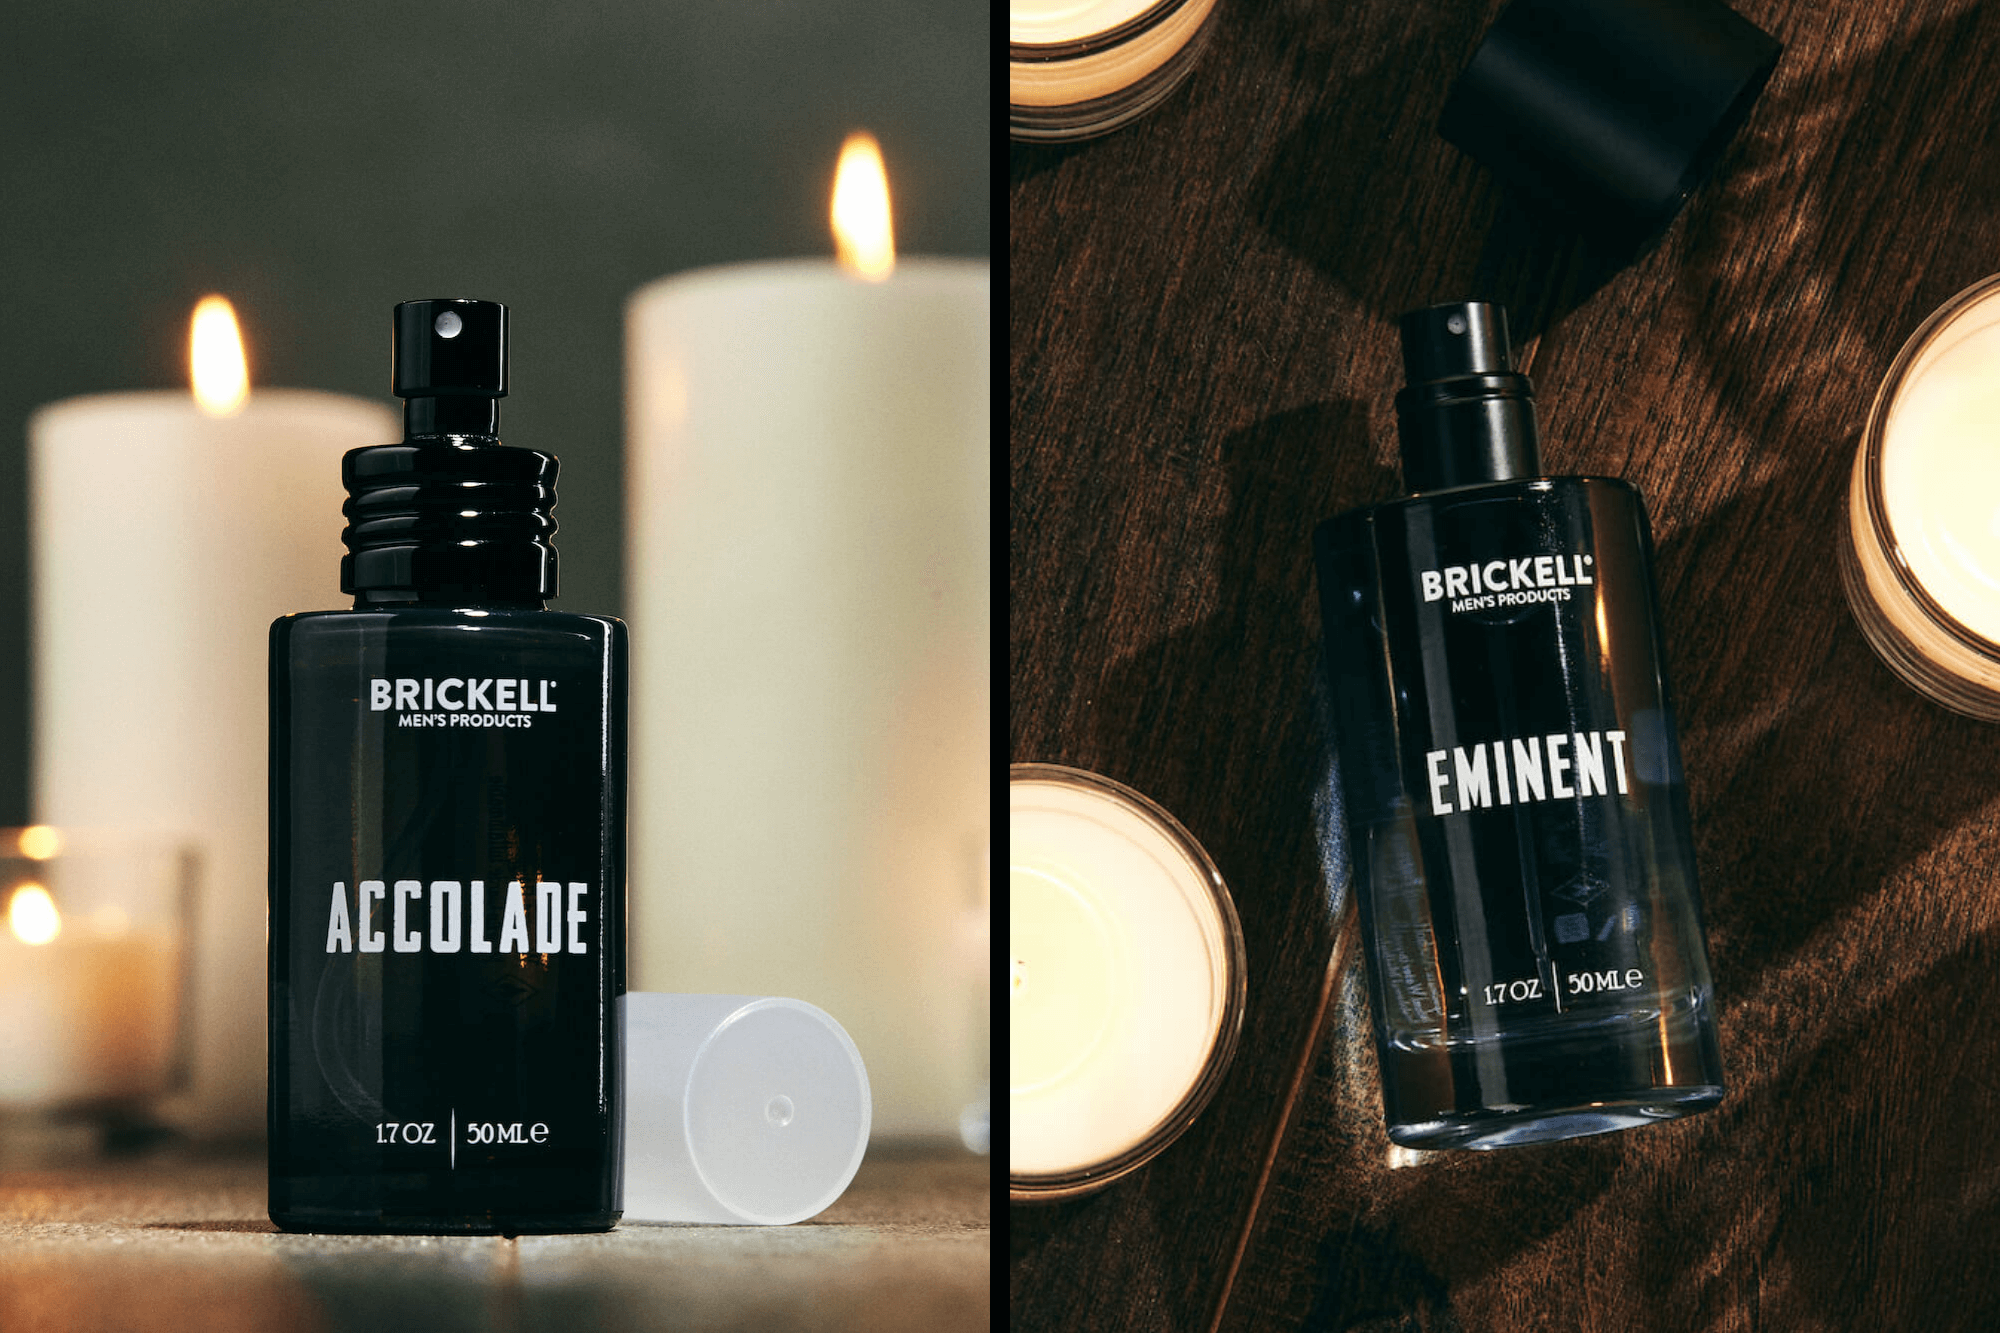 Accolade and Eminent colognes